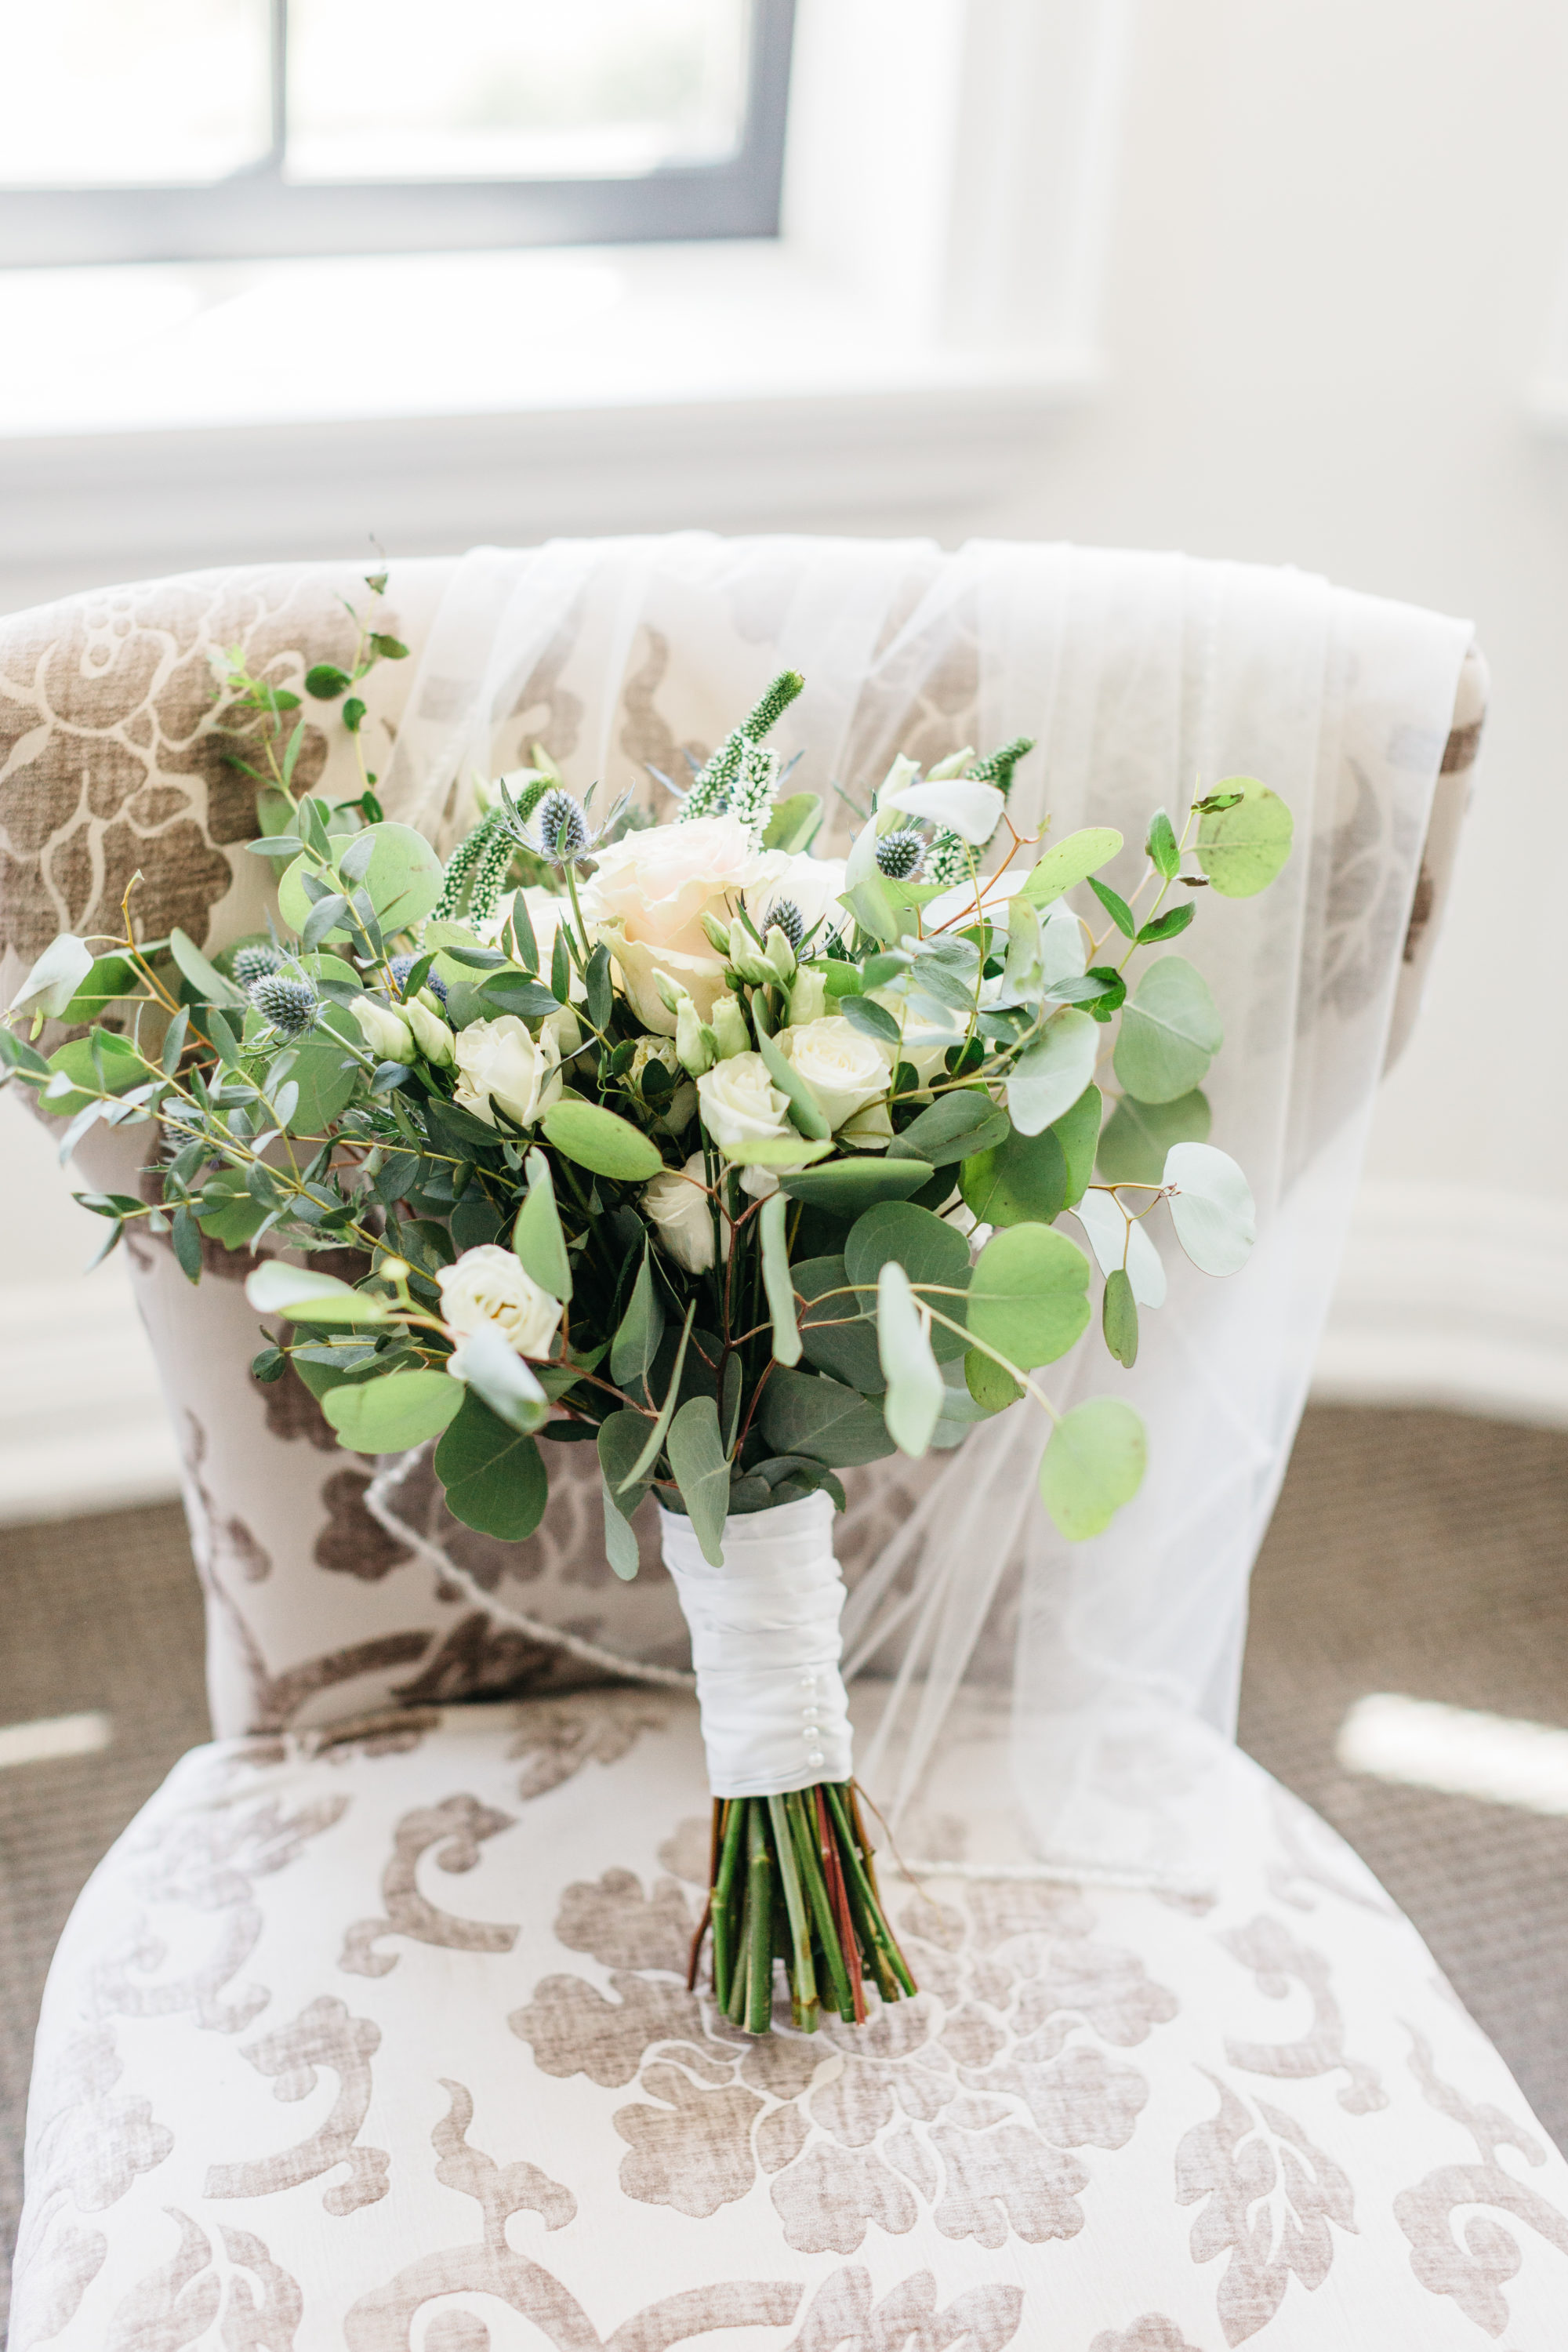 Bride's florals on chair